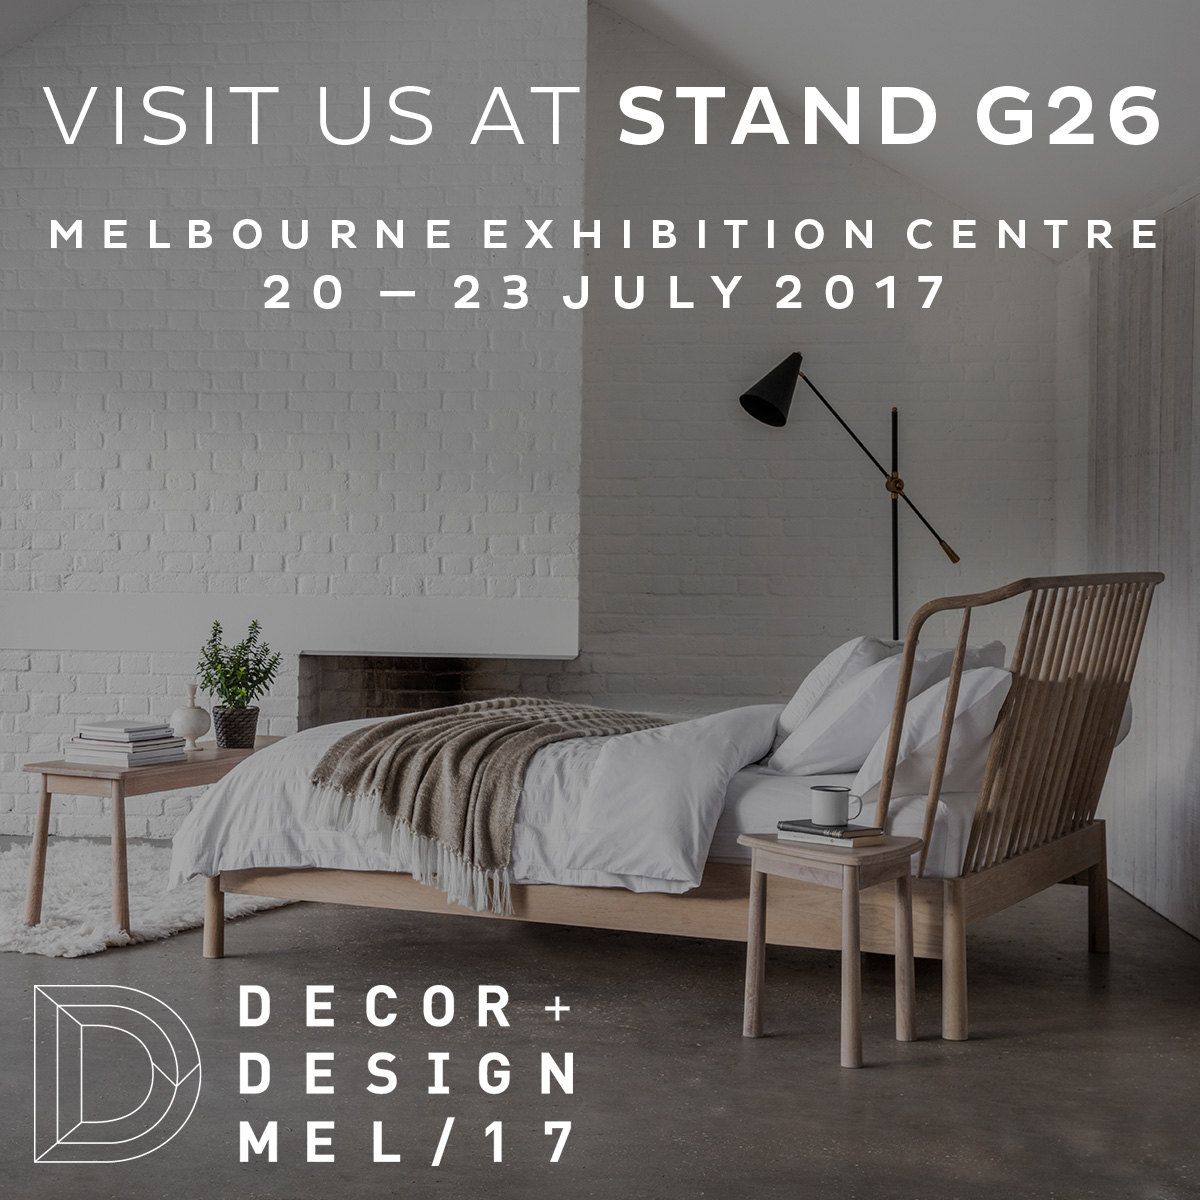 See us at the Decor + Design Show